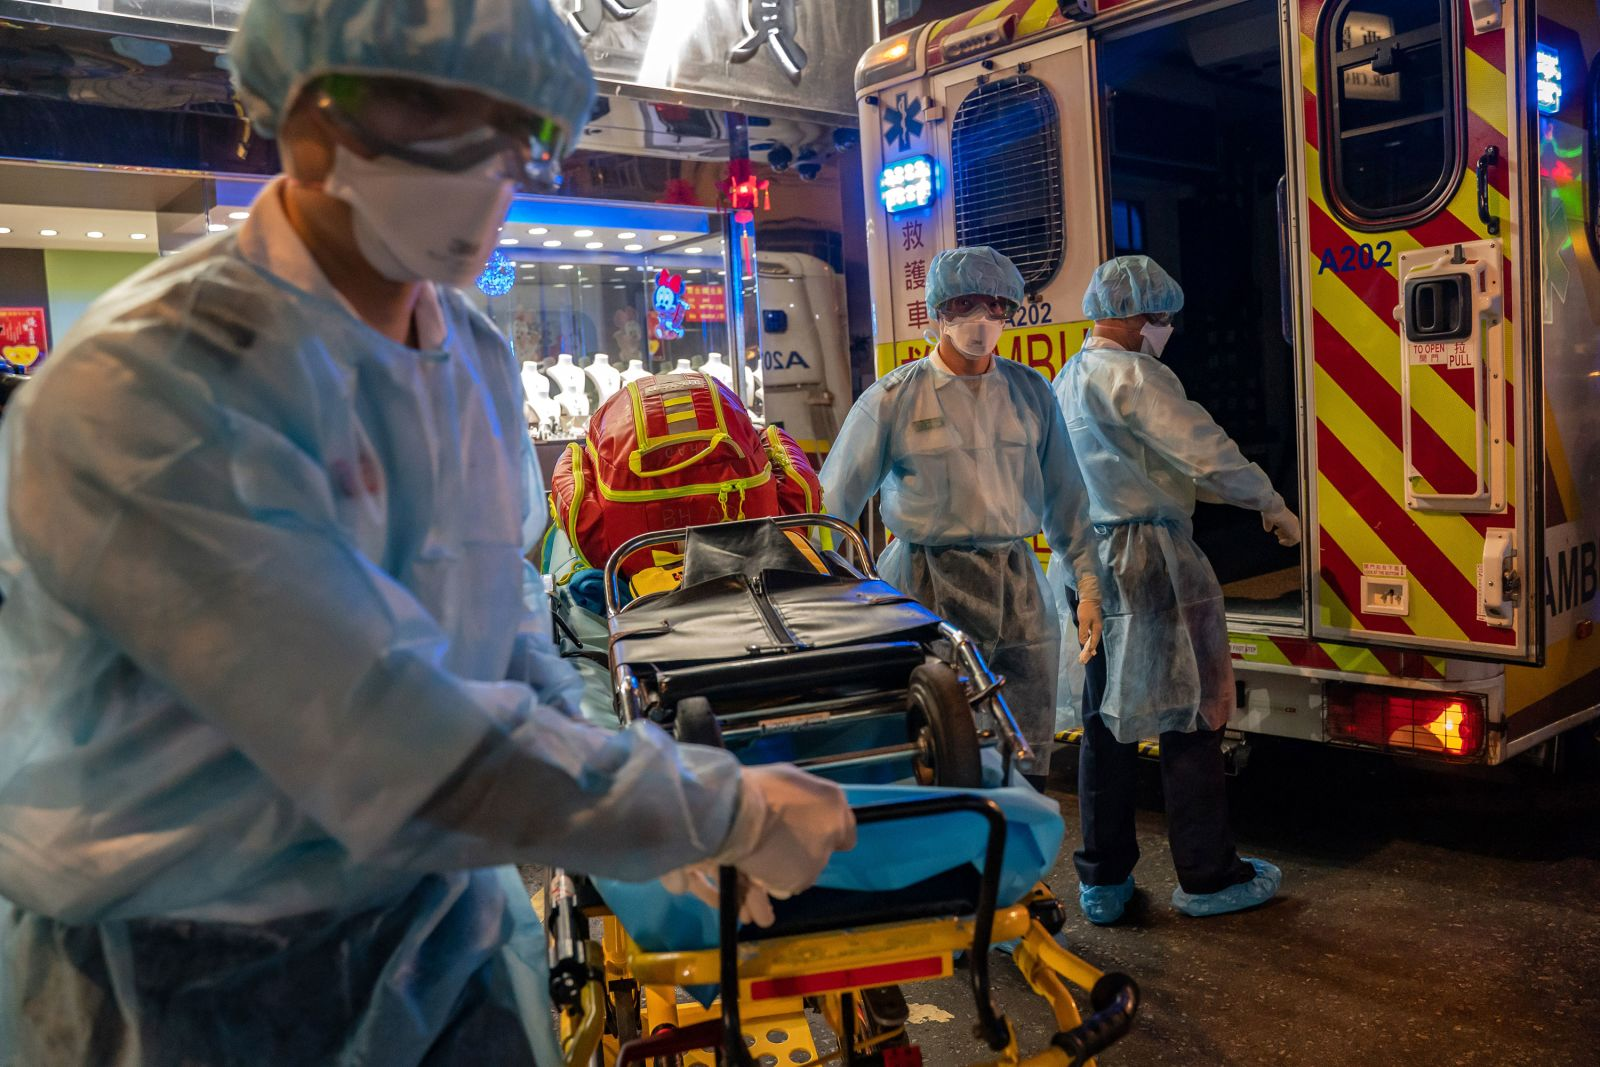 Paramedics carry a stretcher off an ambulance in Hong Kong on Sunday, February 23.